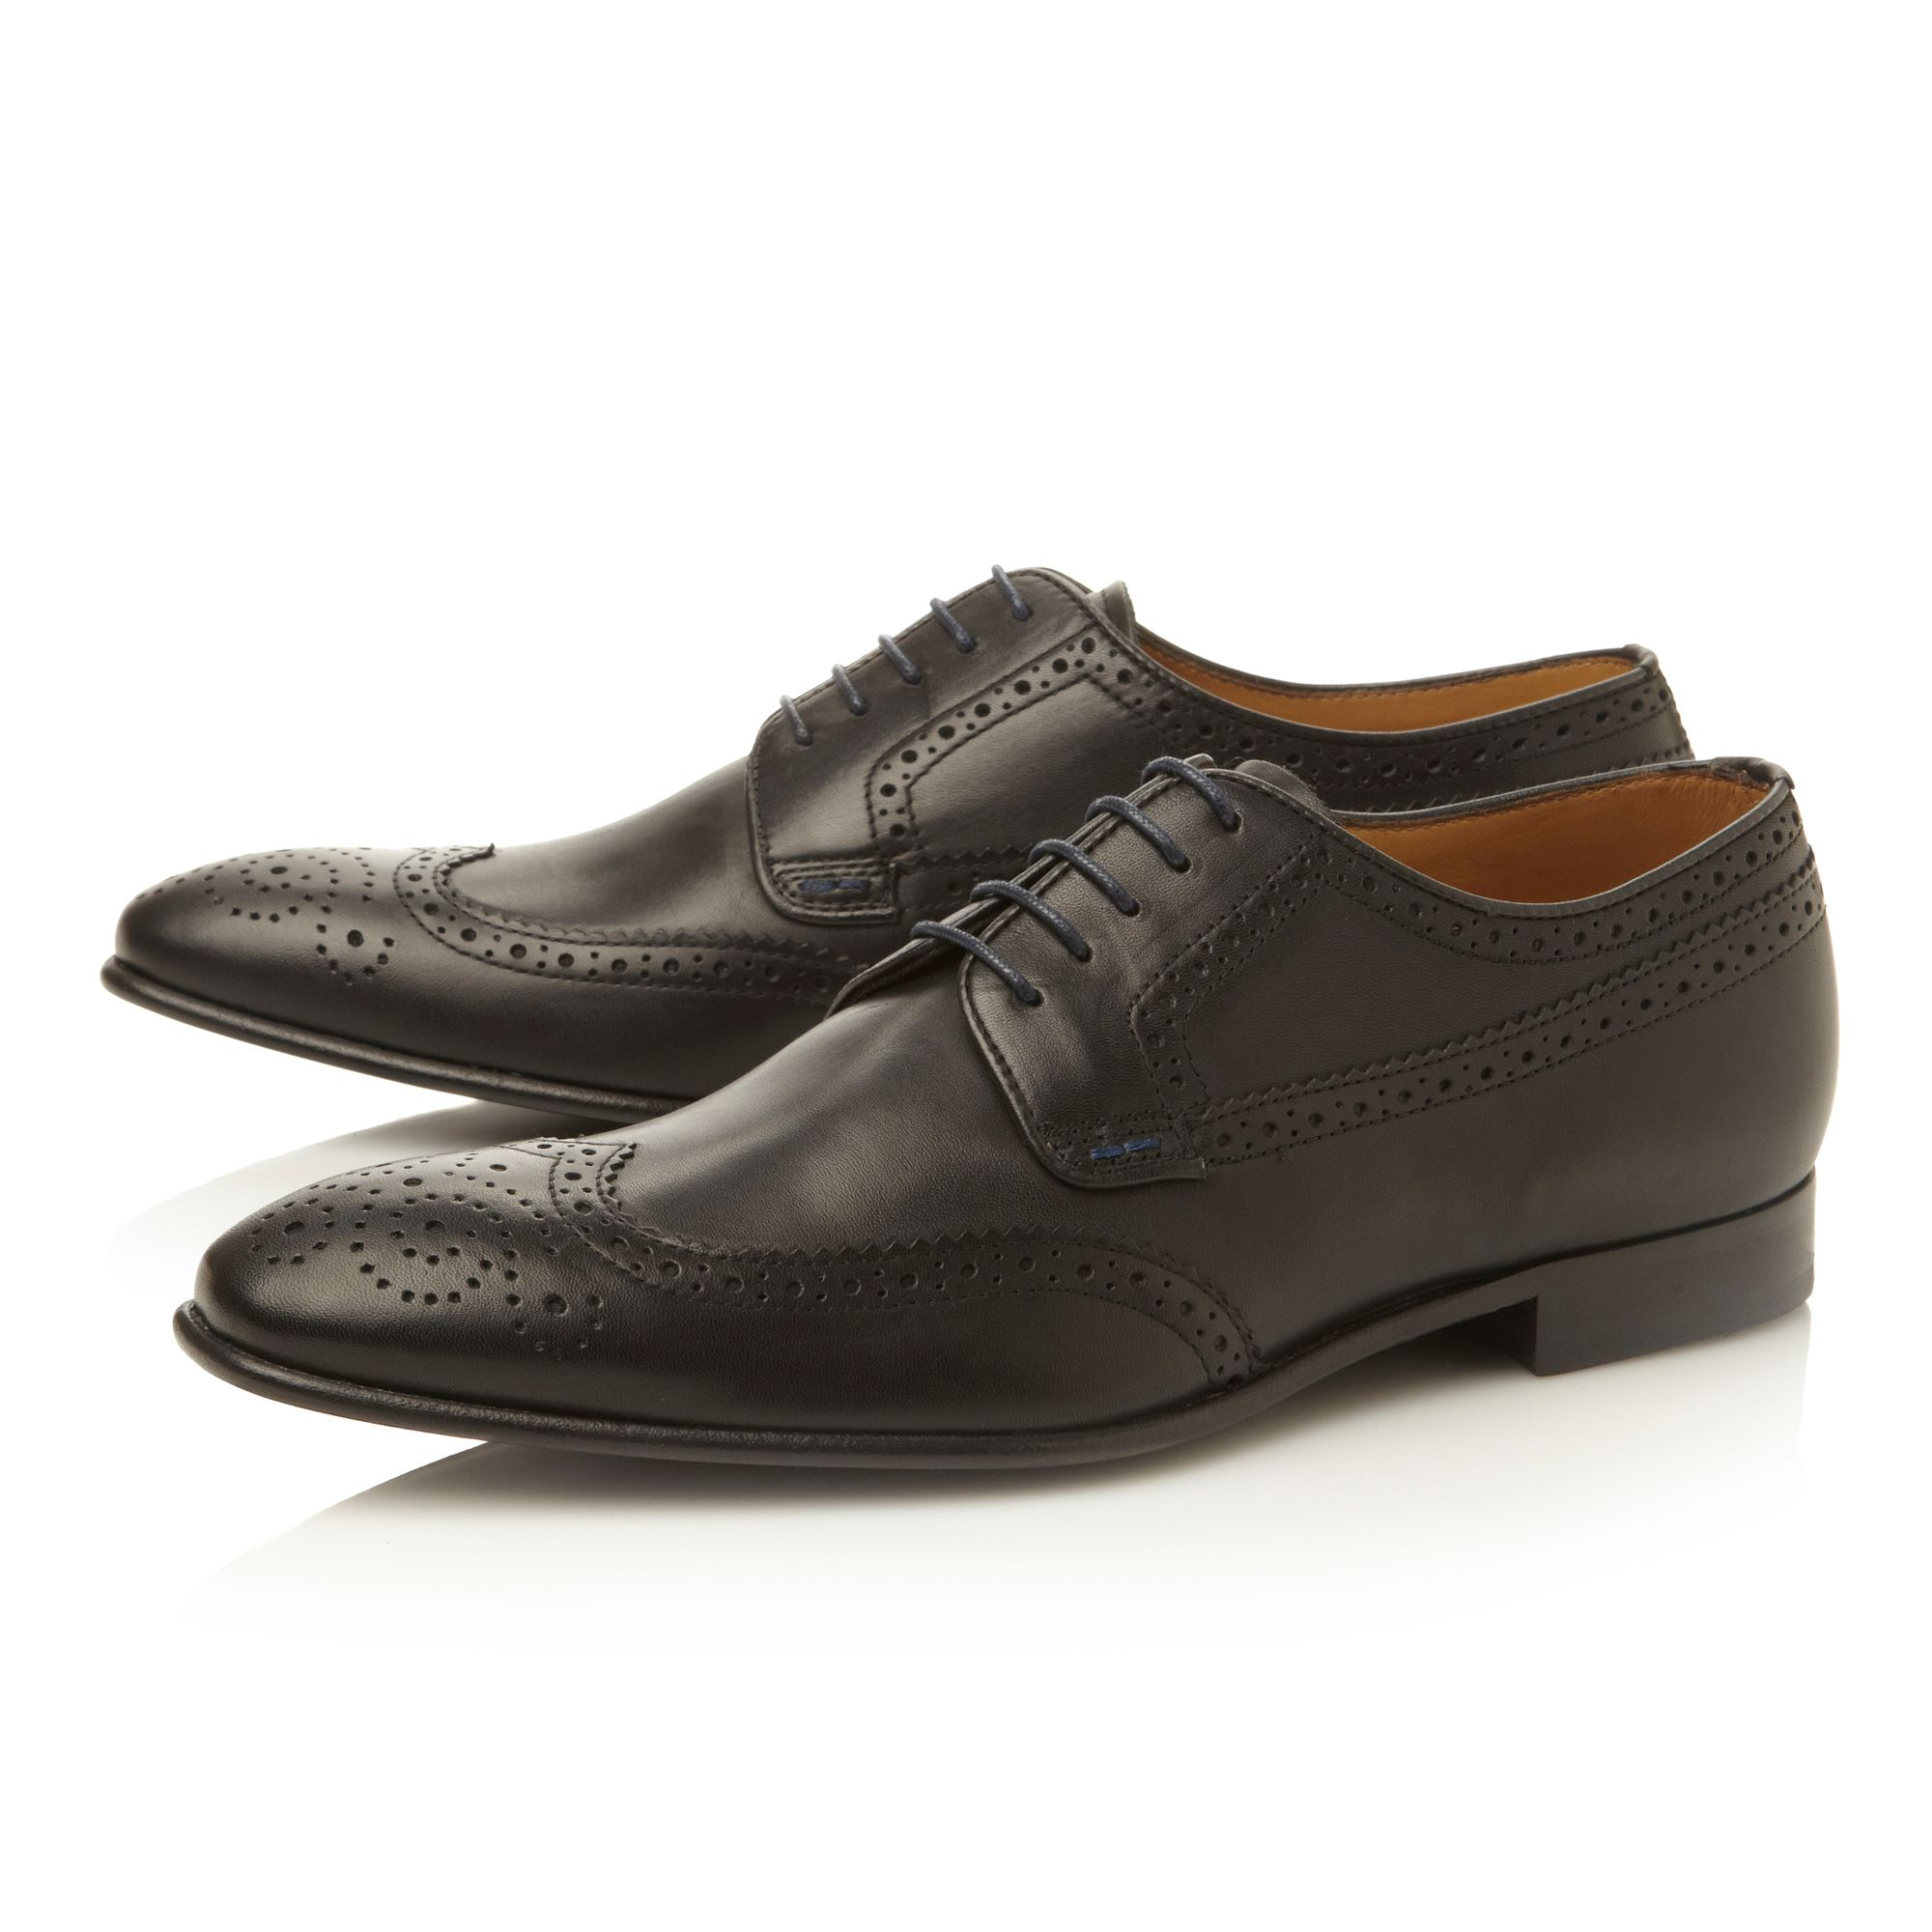 Franz lace up wingtip brogue gibson shoes